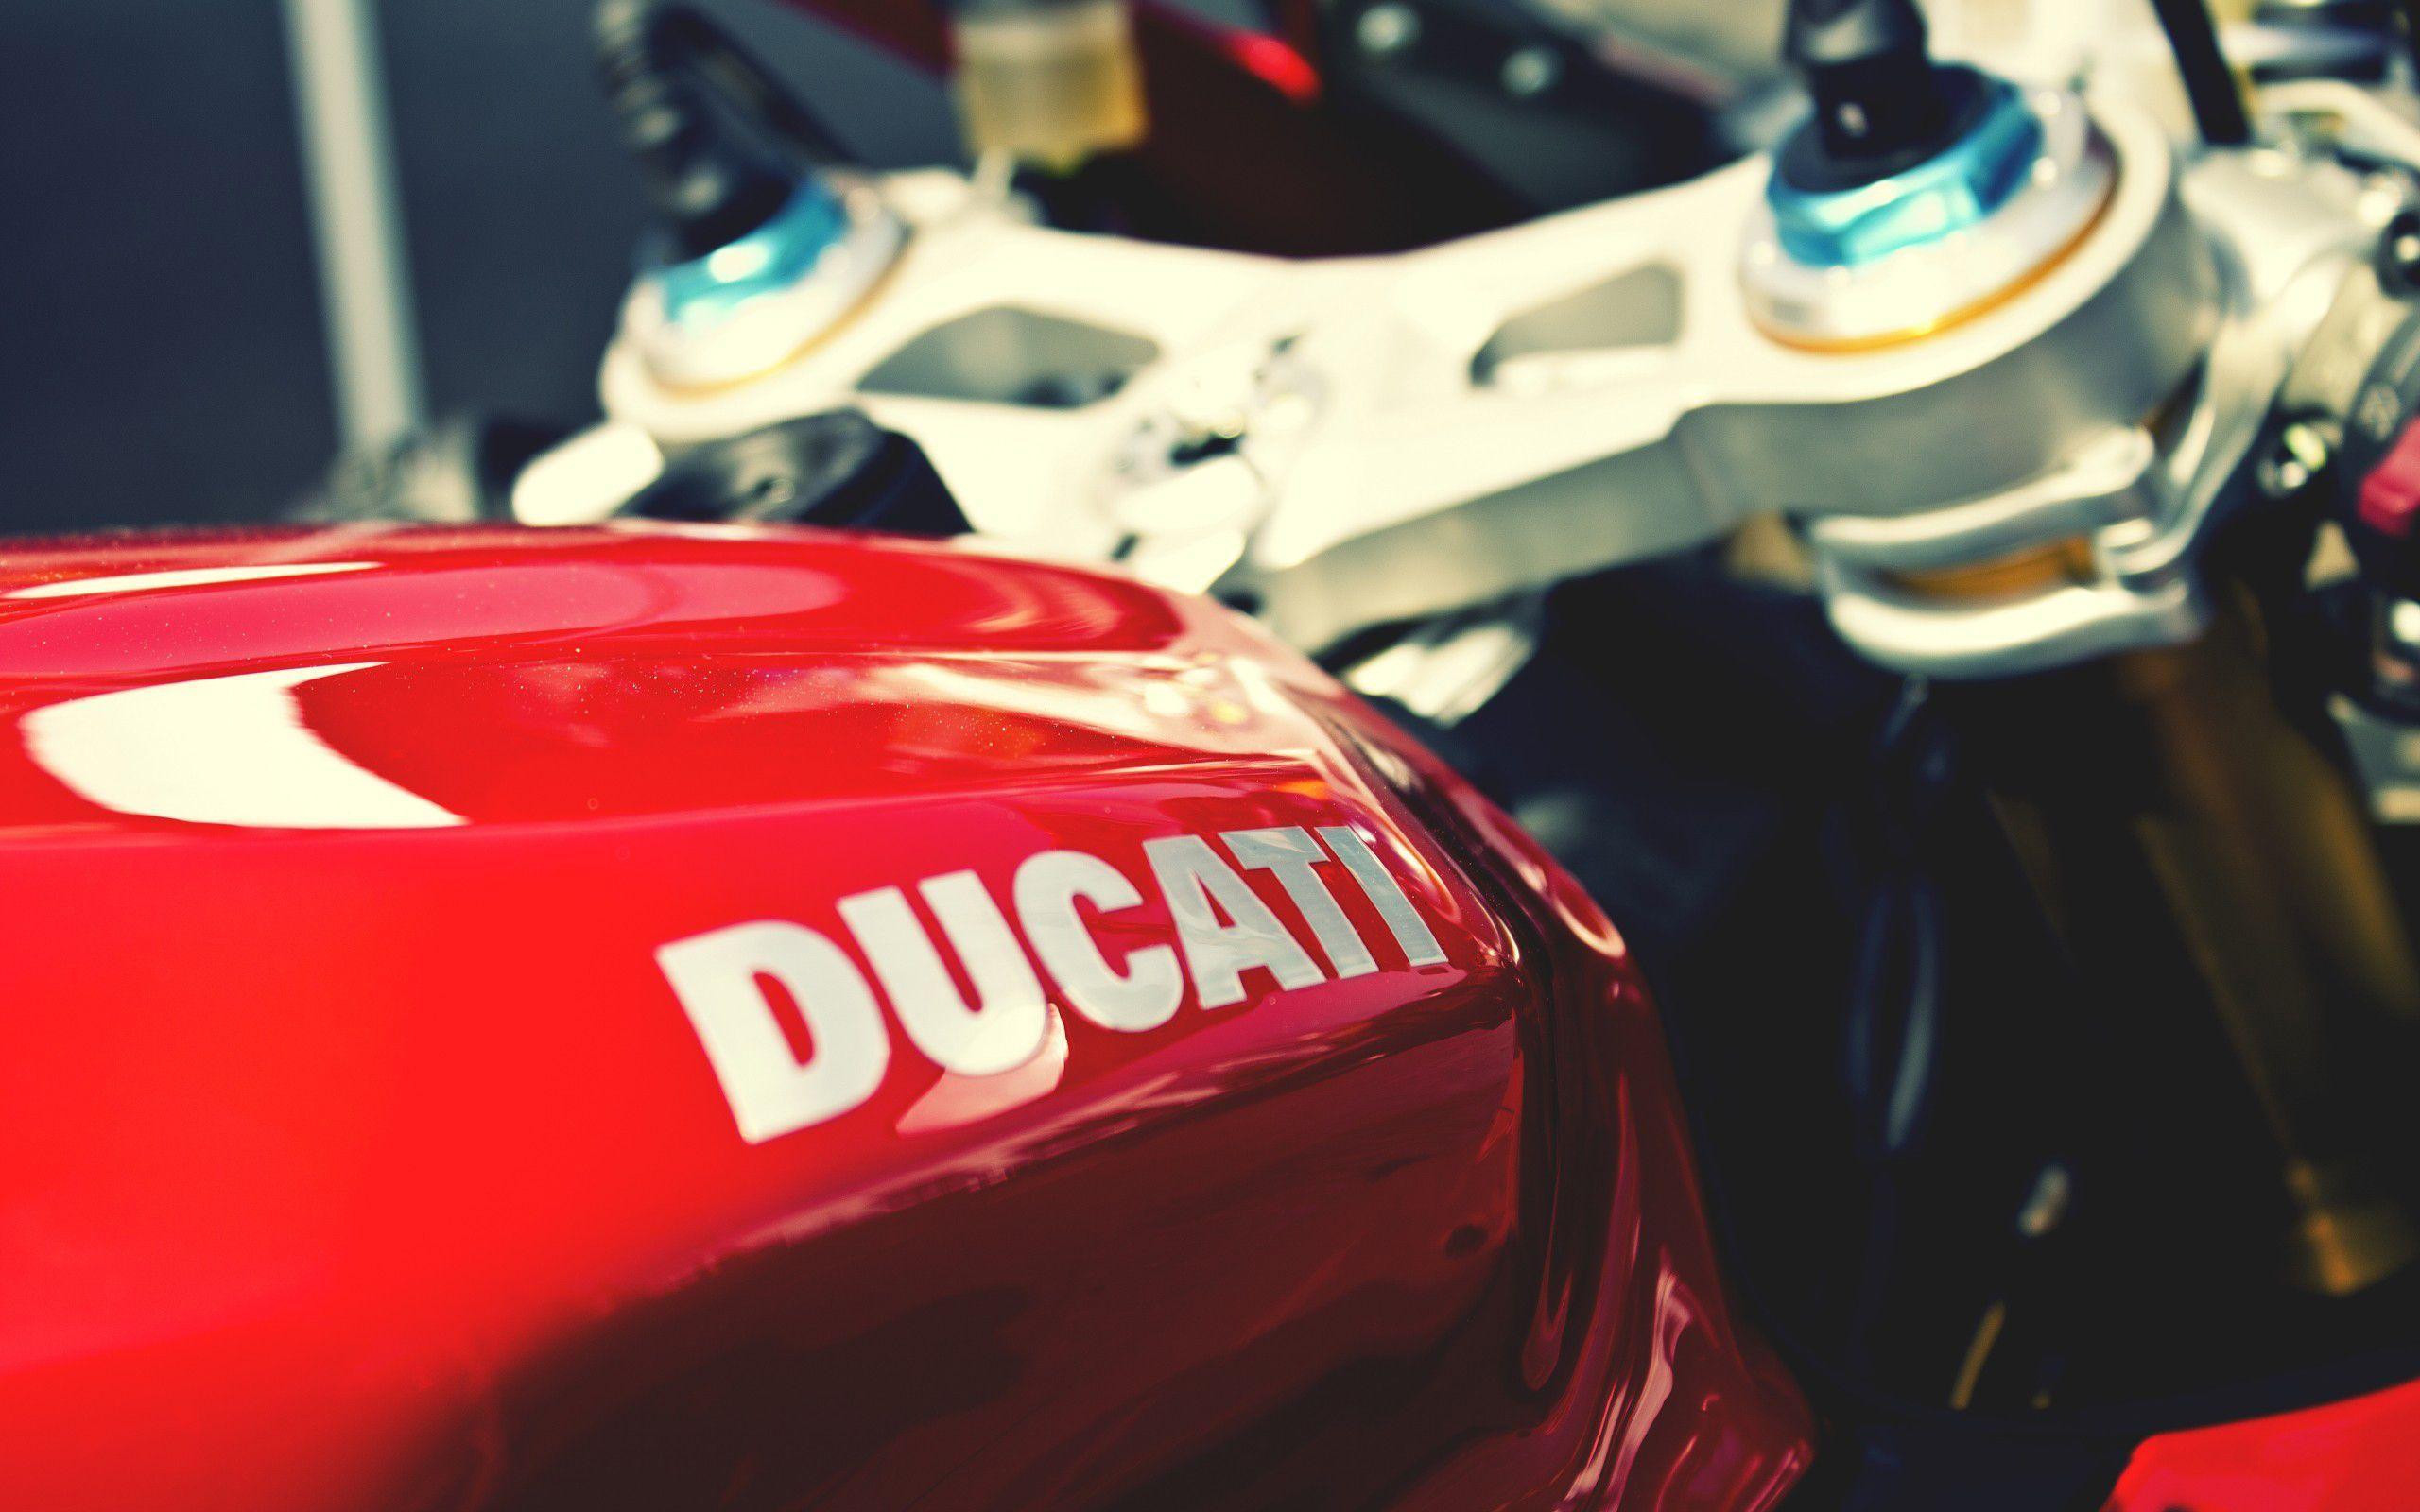 Ducati Logo Wallpaper Iphone